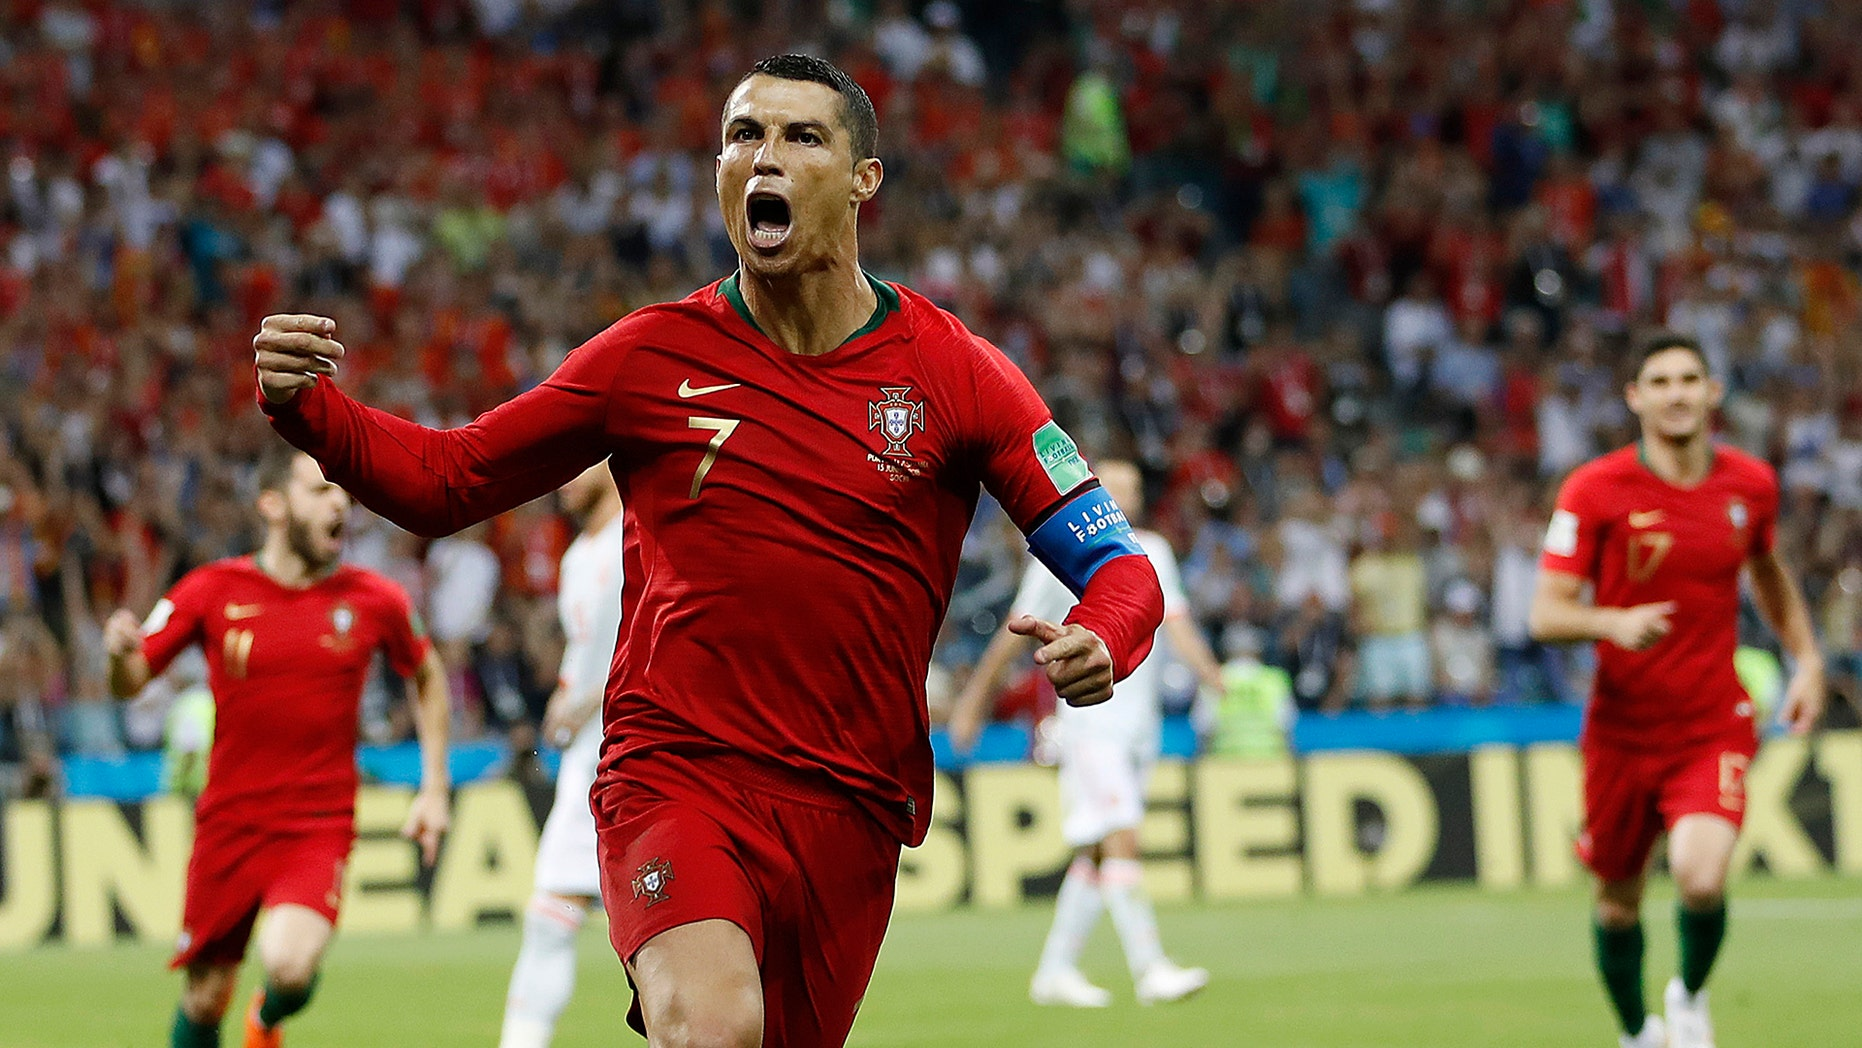 Portugal's Cristiano Ronaldo celebrates his side's opening goal during the group B match between Portugal and Spain at the 2018 soccer World Cup in Sochi, Russia, Friday, June 15, 2018. (AP Photo/Francisco Seco)